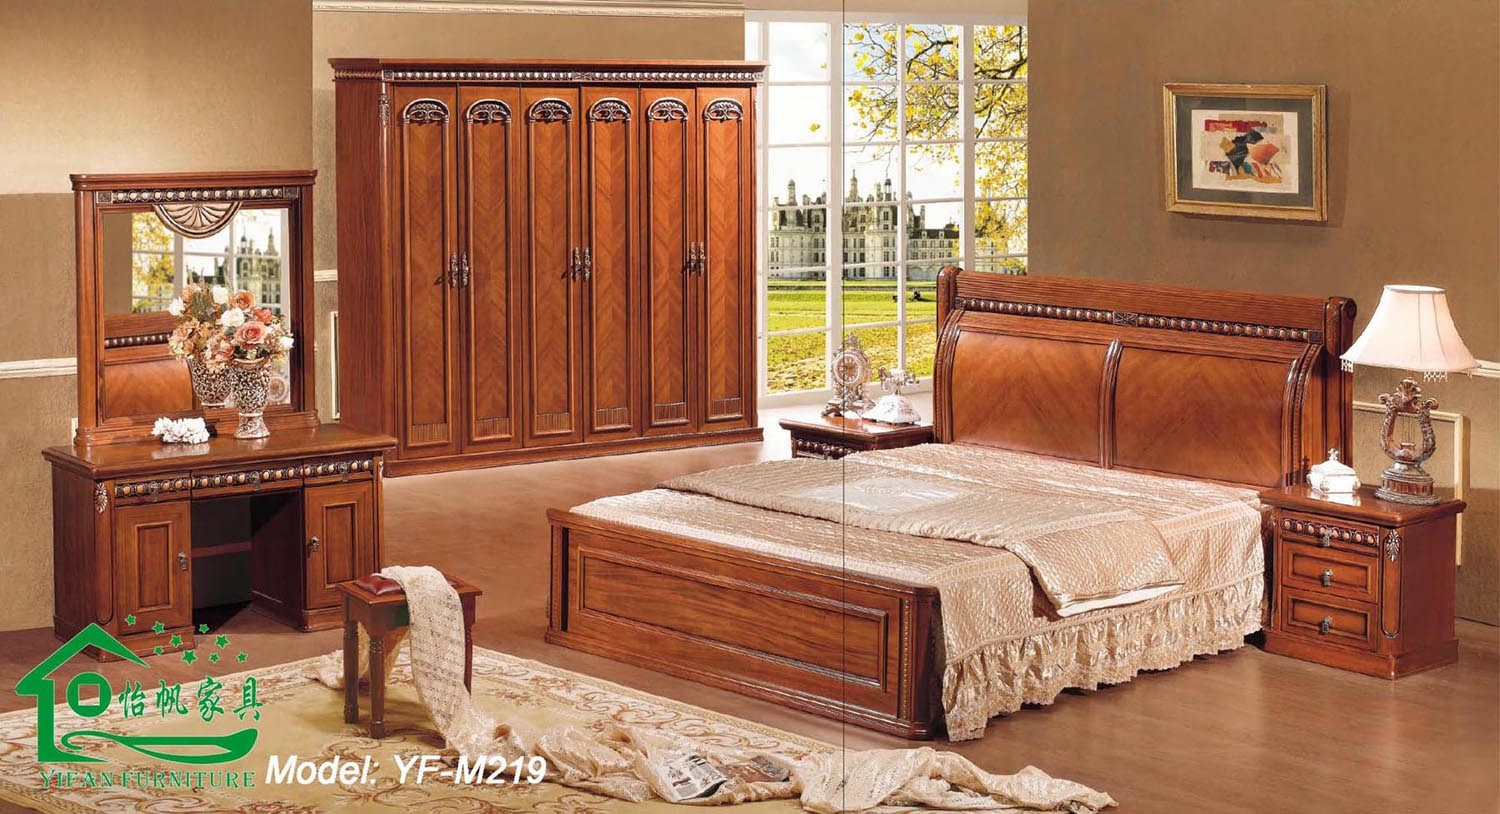 Wooden bedroom furniture at the galleria Wooden furniture pics